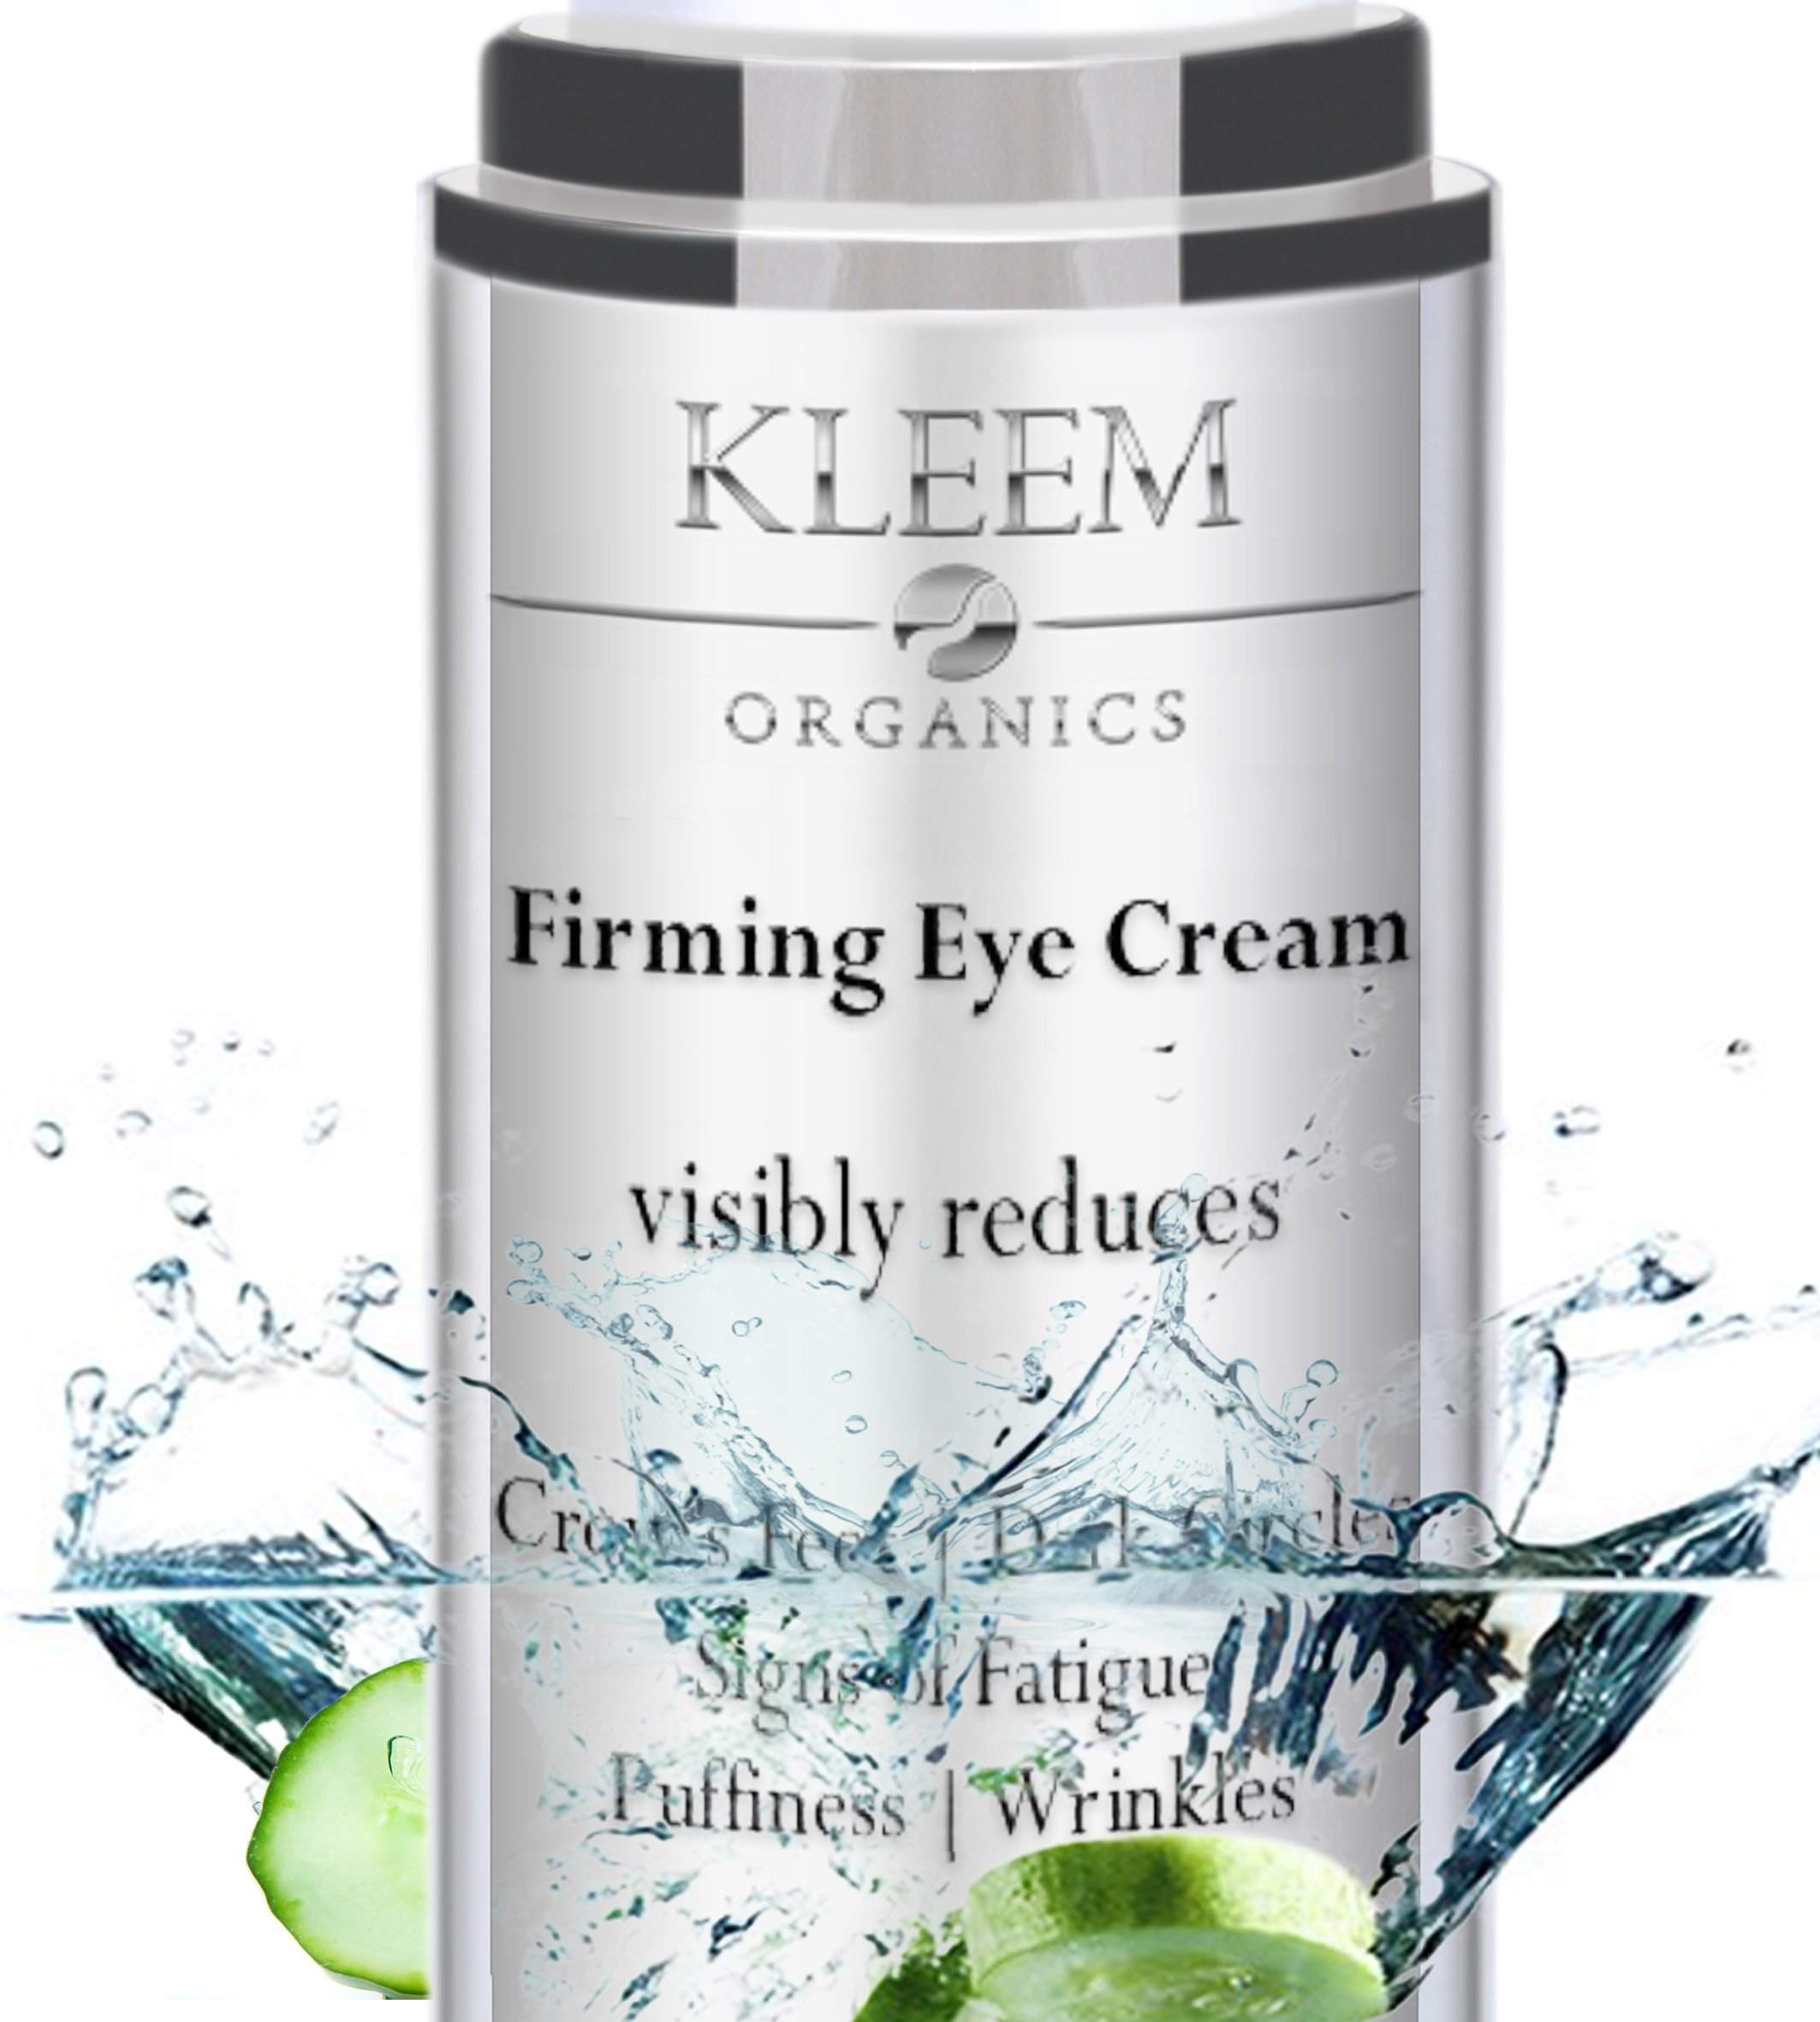 NEW Anti Aging Eye Cream for Dark Circles and Puffiness that Reduces Eye Bags, Crow's Feet, Fine Lines, and Sagginess in JUST 6 WEEKS. The Most Effective Under Eye Cream for Wrinkles (0.51 fl.oz) by Kleem Organics